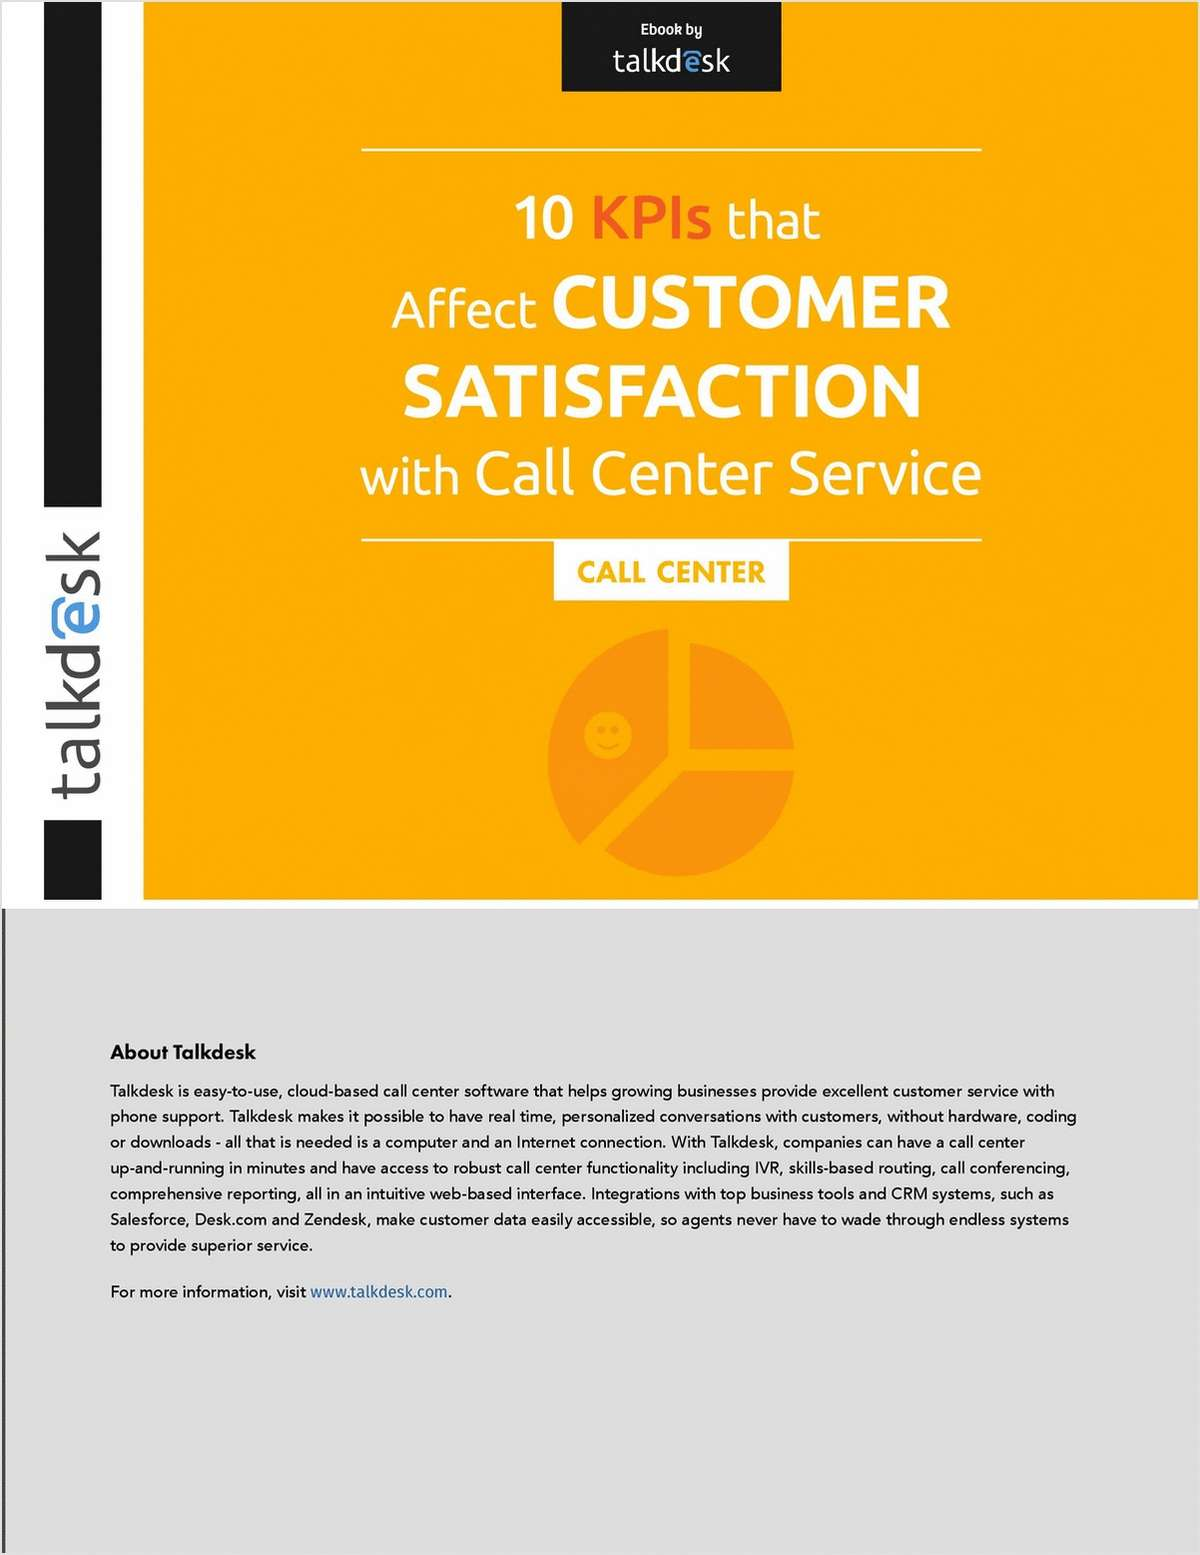 10 KPIs That Affect Customer Satisfaction with Call Center Service